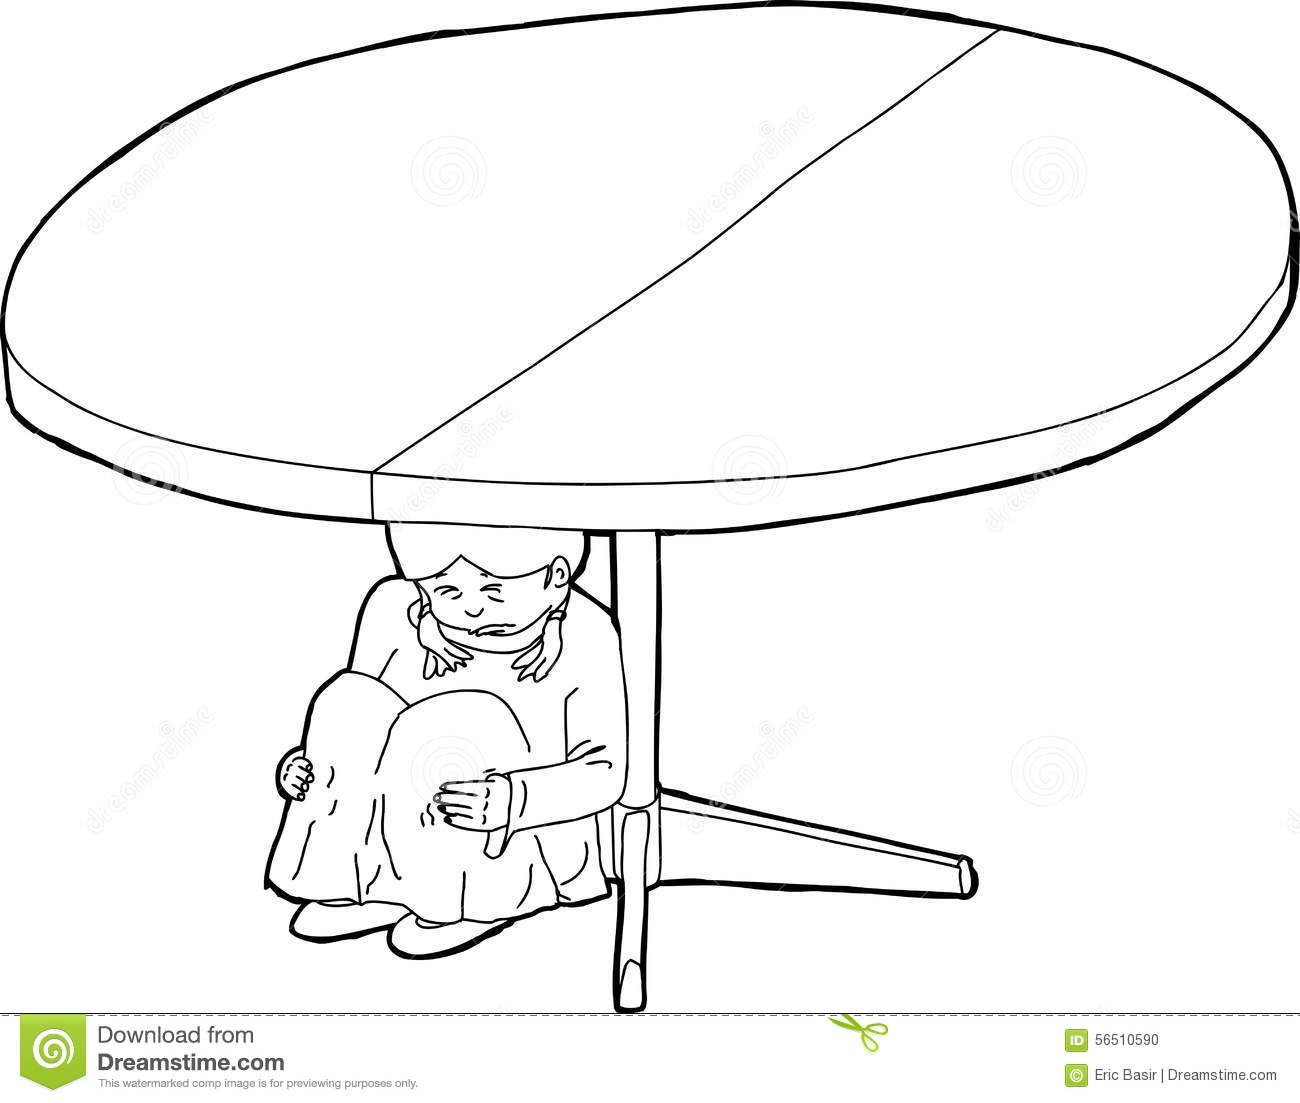 Outlined Weeping Child Under Table Stock Illustration